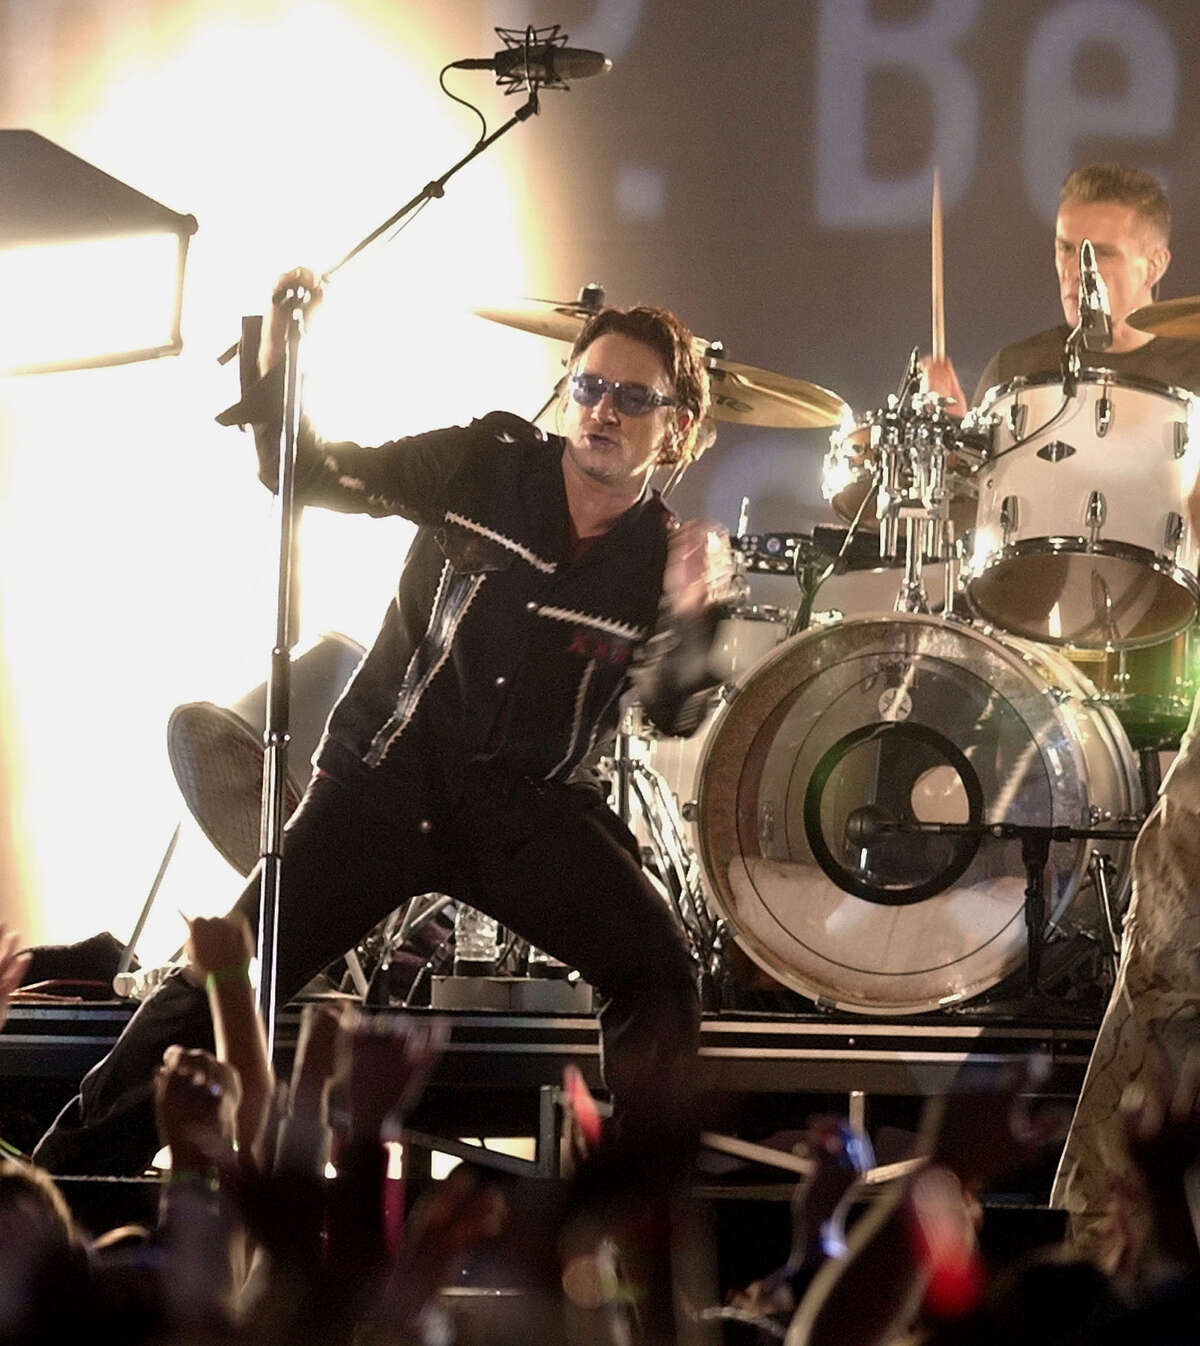 In 2002, just months after the tragedy of 9/11, Bono and U2 delivered a Super Bowl halftime show that was joyous, emotional and powerful.